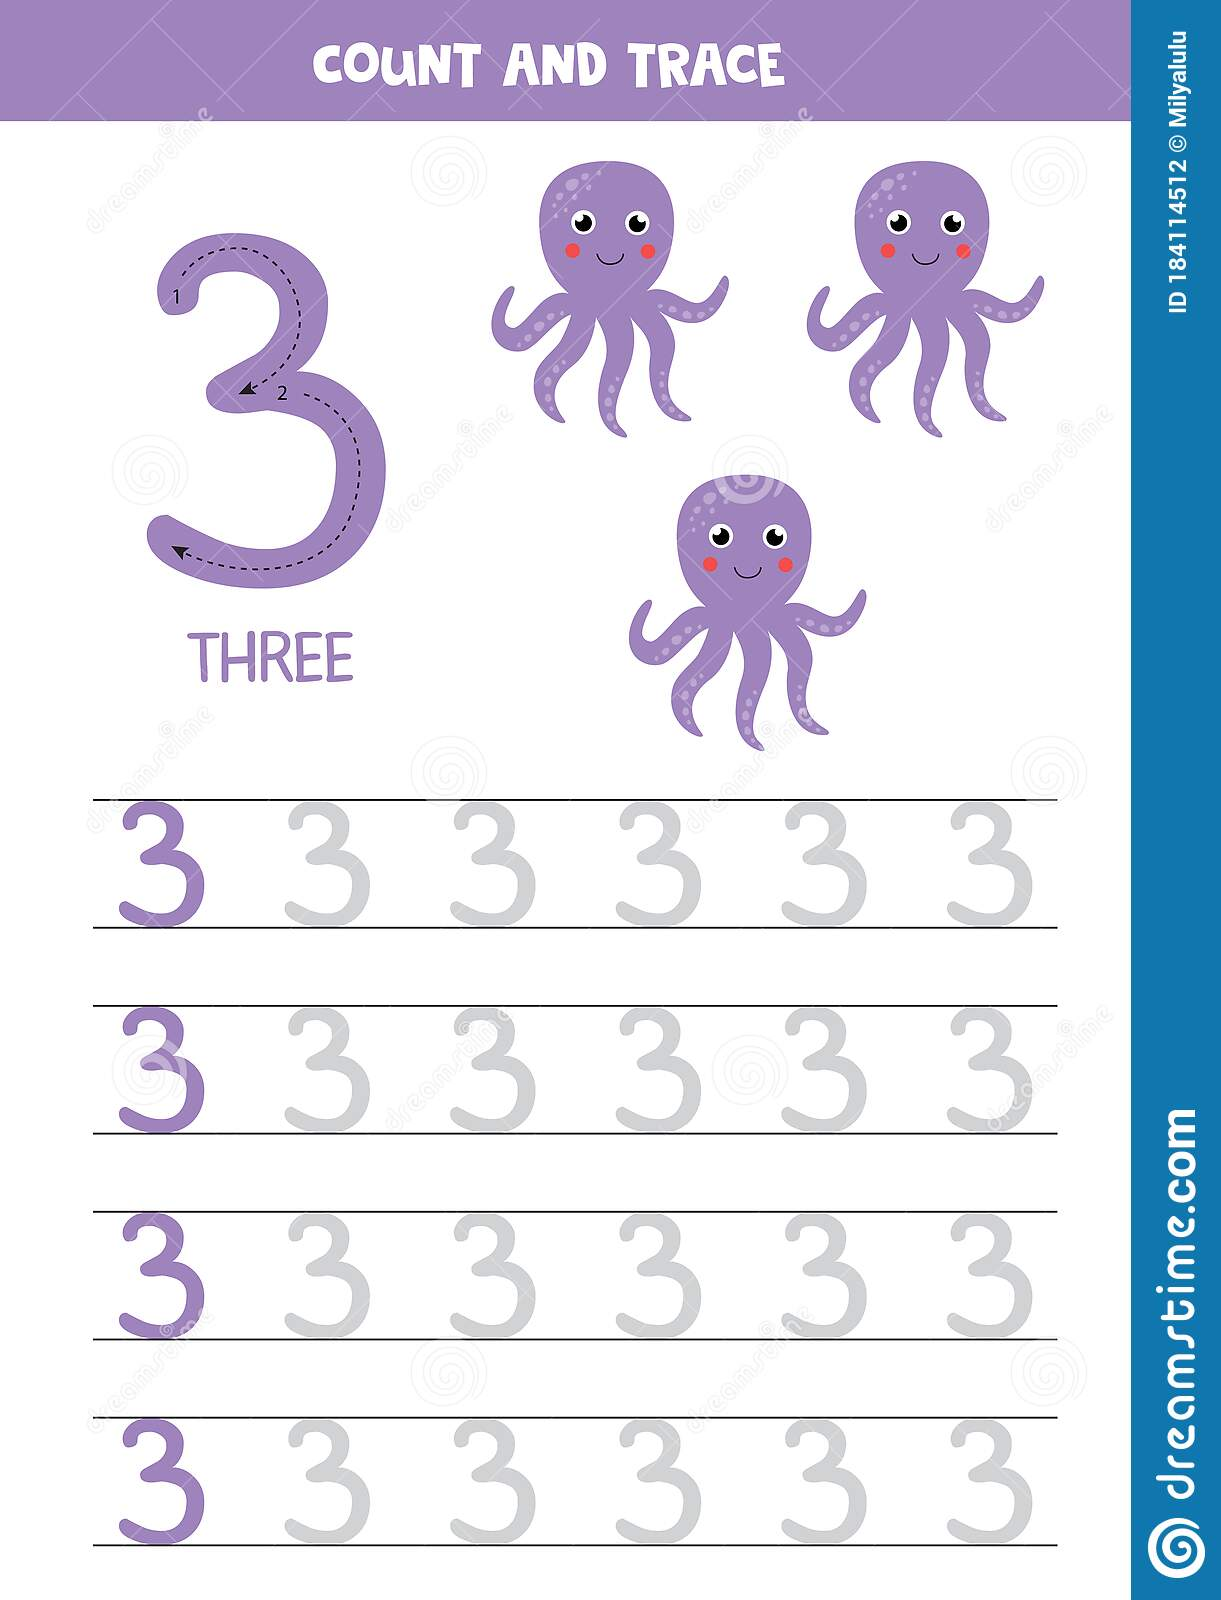 Tracing The Number 3 Cartoon Purple Octopuses